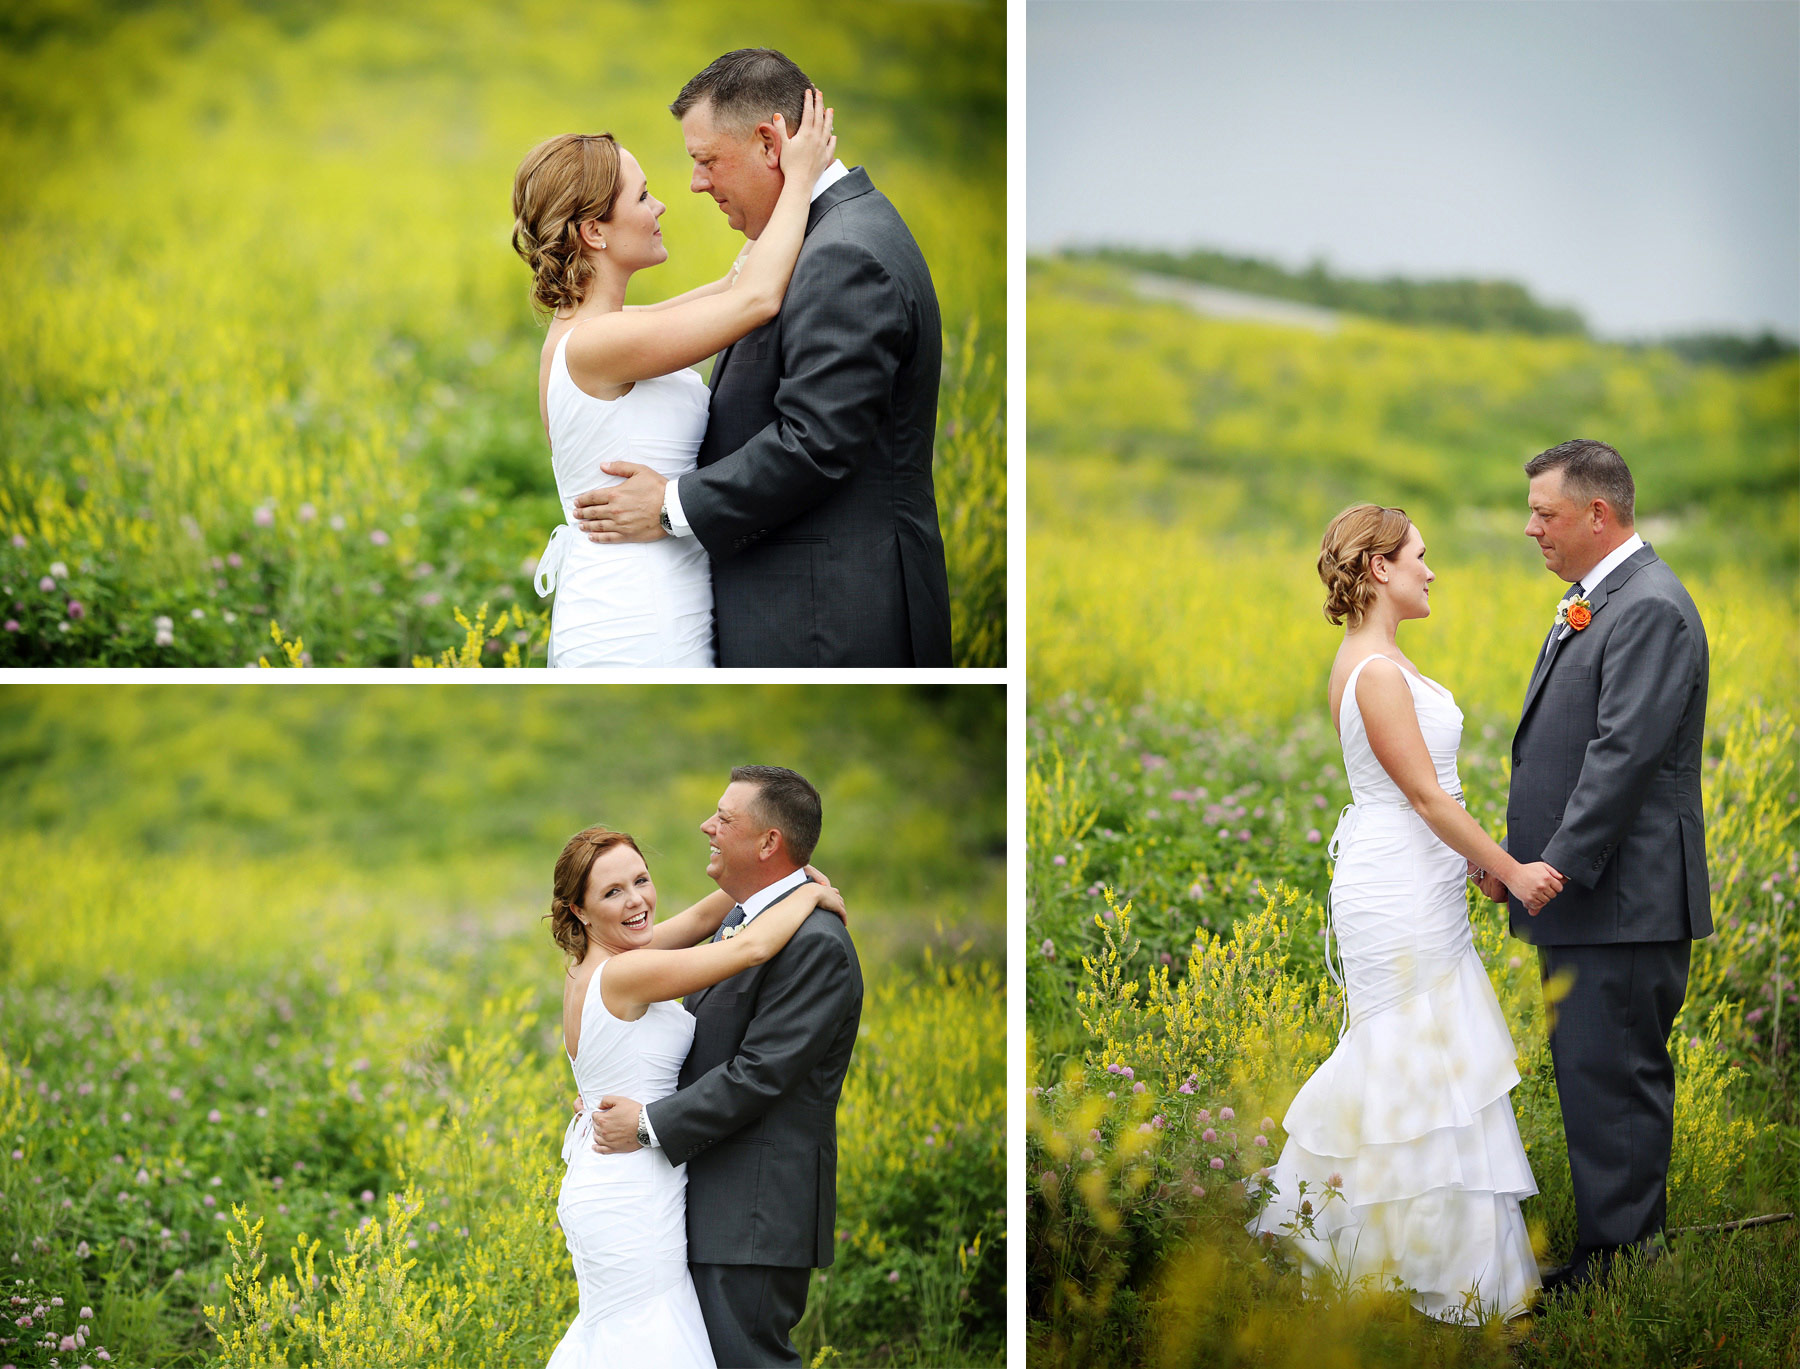 11-Des-Moines-Iowa-Wedding-Photography-by-Vick-Photography-Farm-Wedding-First-Look-Fields-Lindsay-&-Chad.jpg